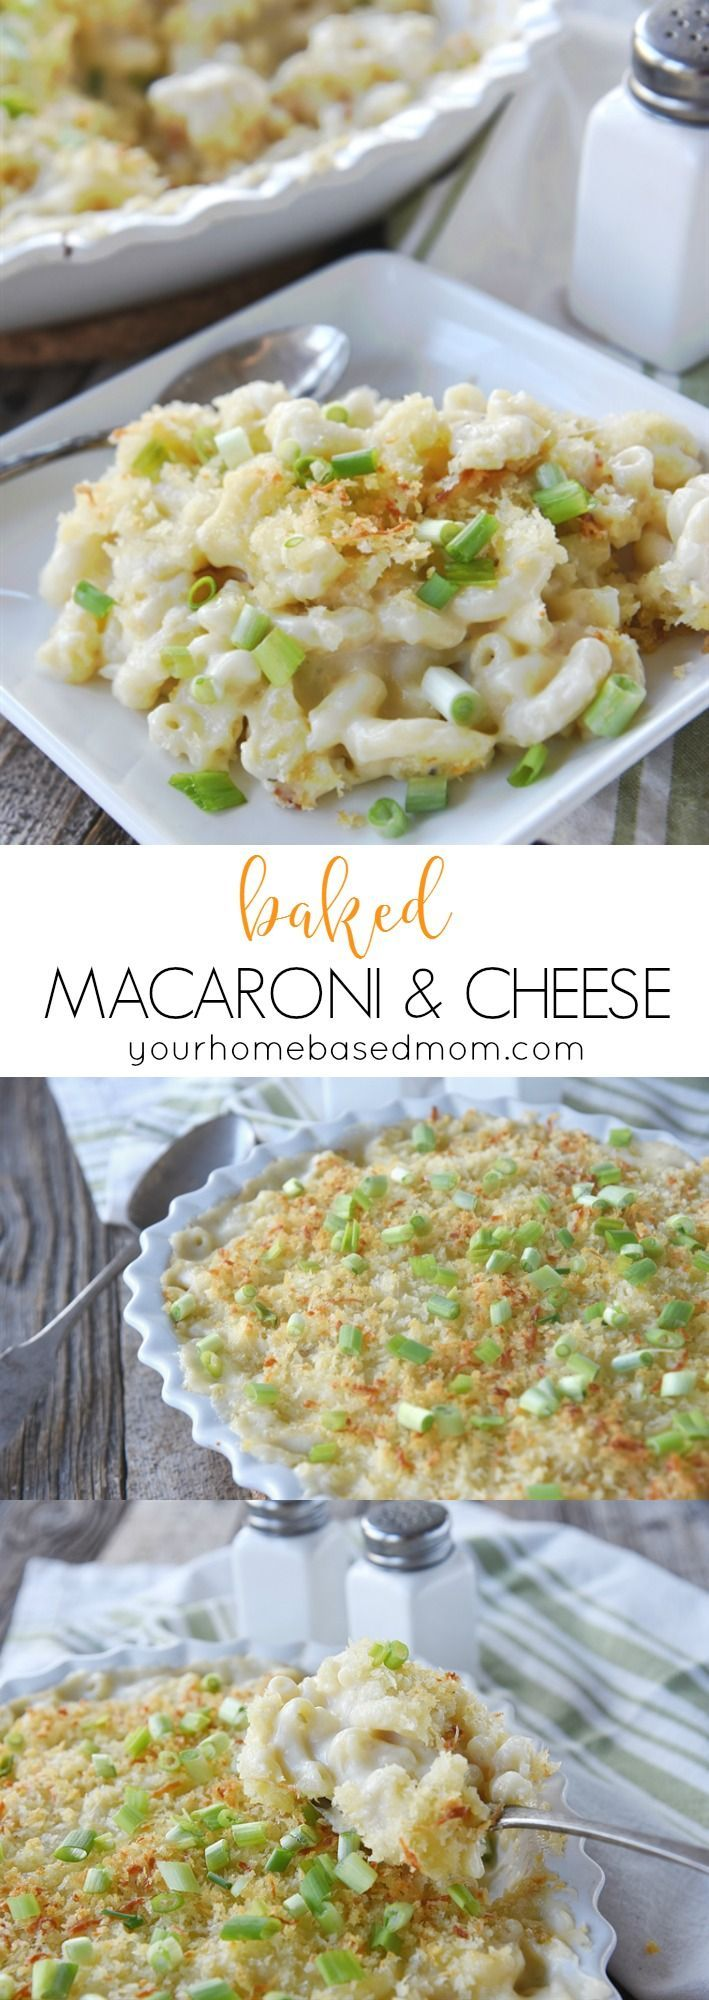 how to make baked macaroni and cheese easy